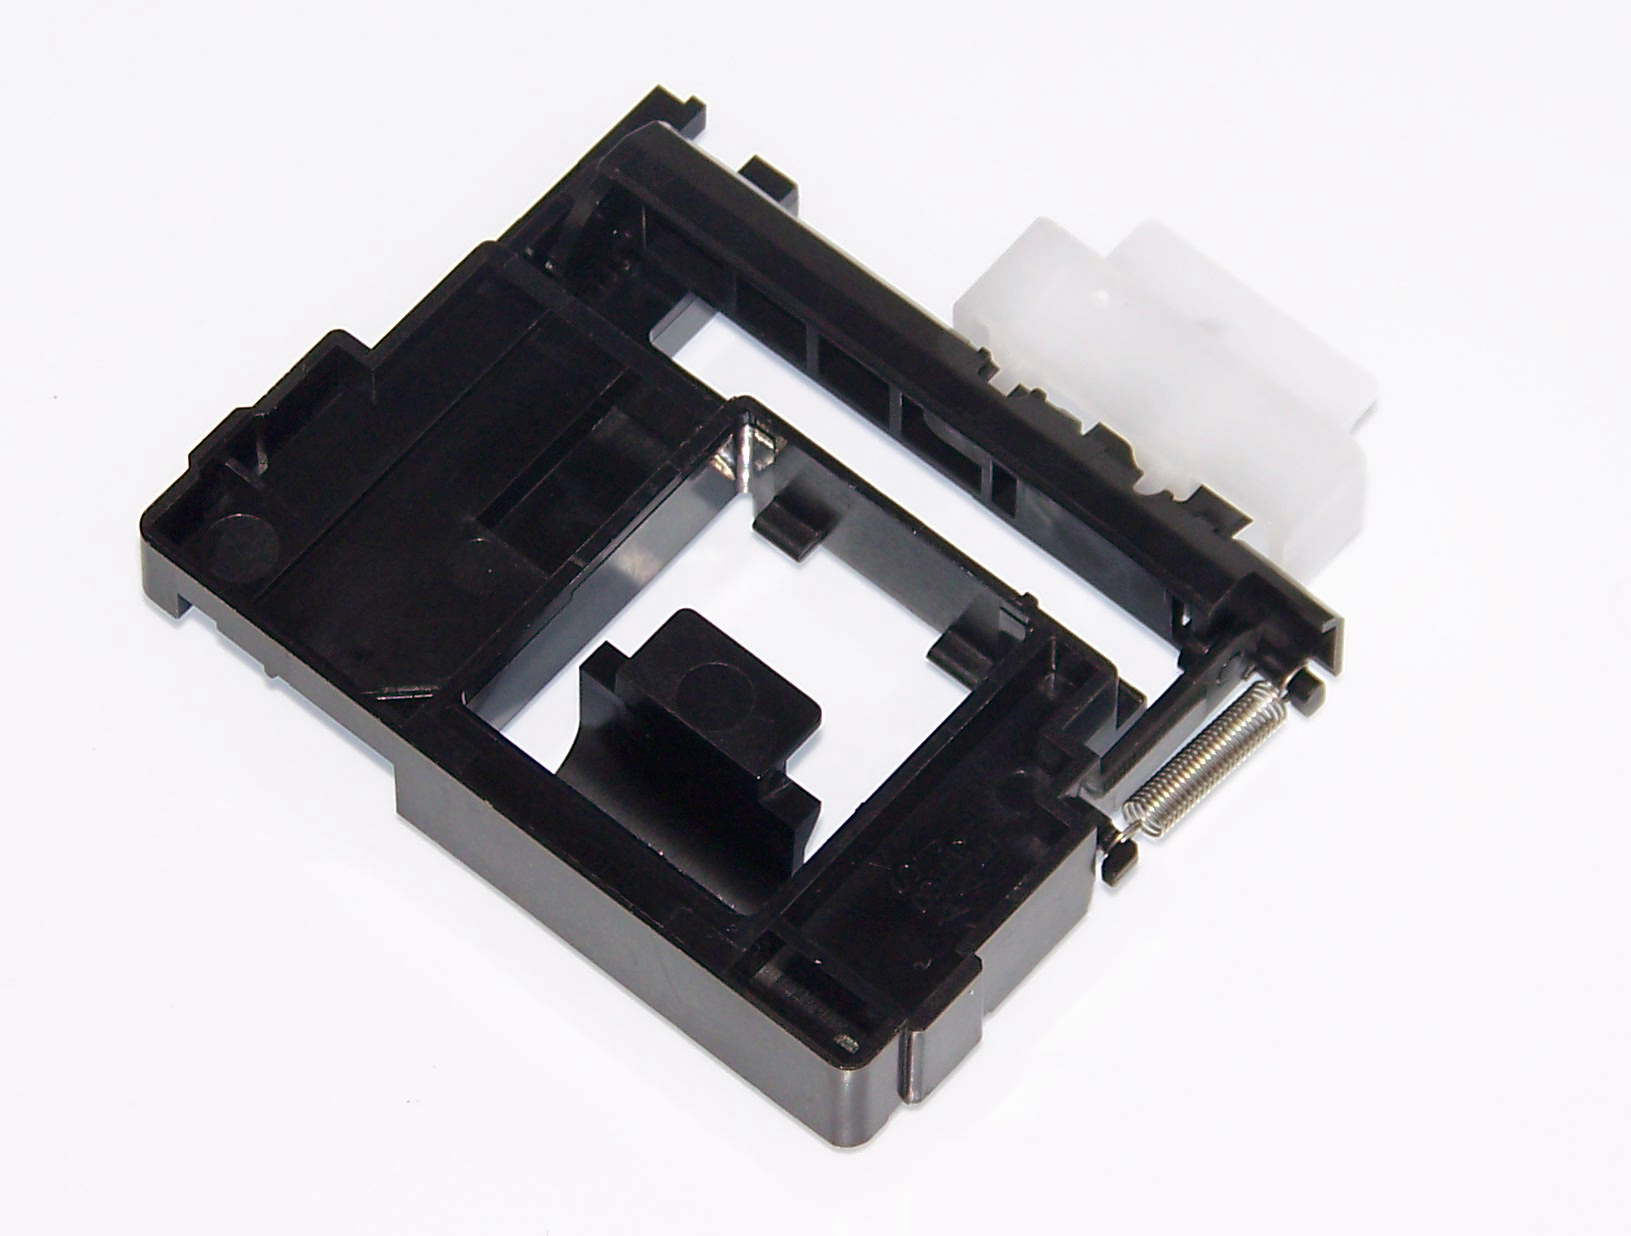 Details about NEW OEM Epson Wiper Assembly For SureColor P9000, P8000,  P7000, P6000